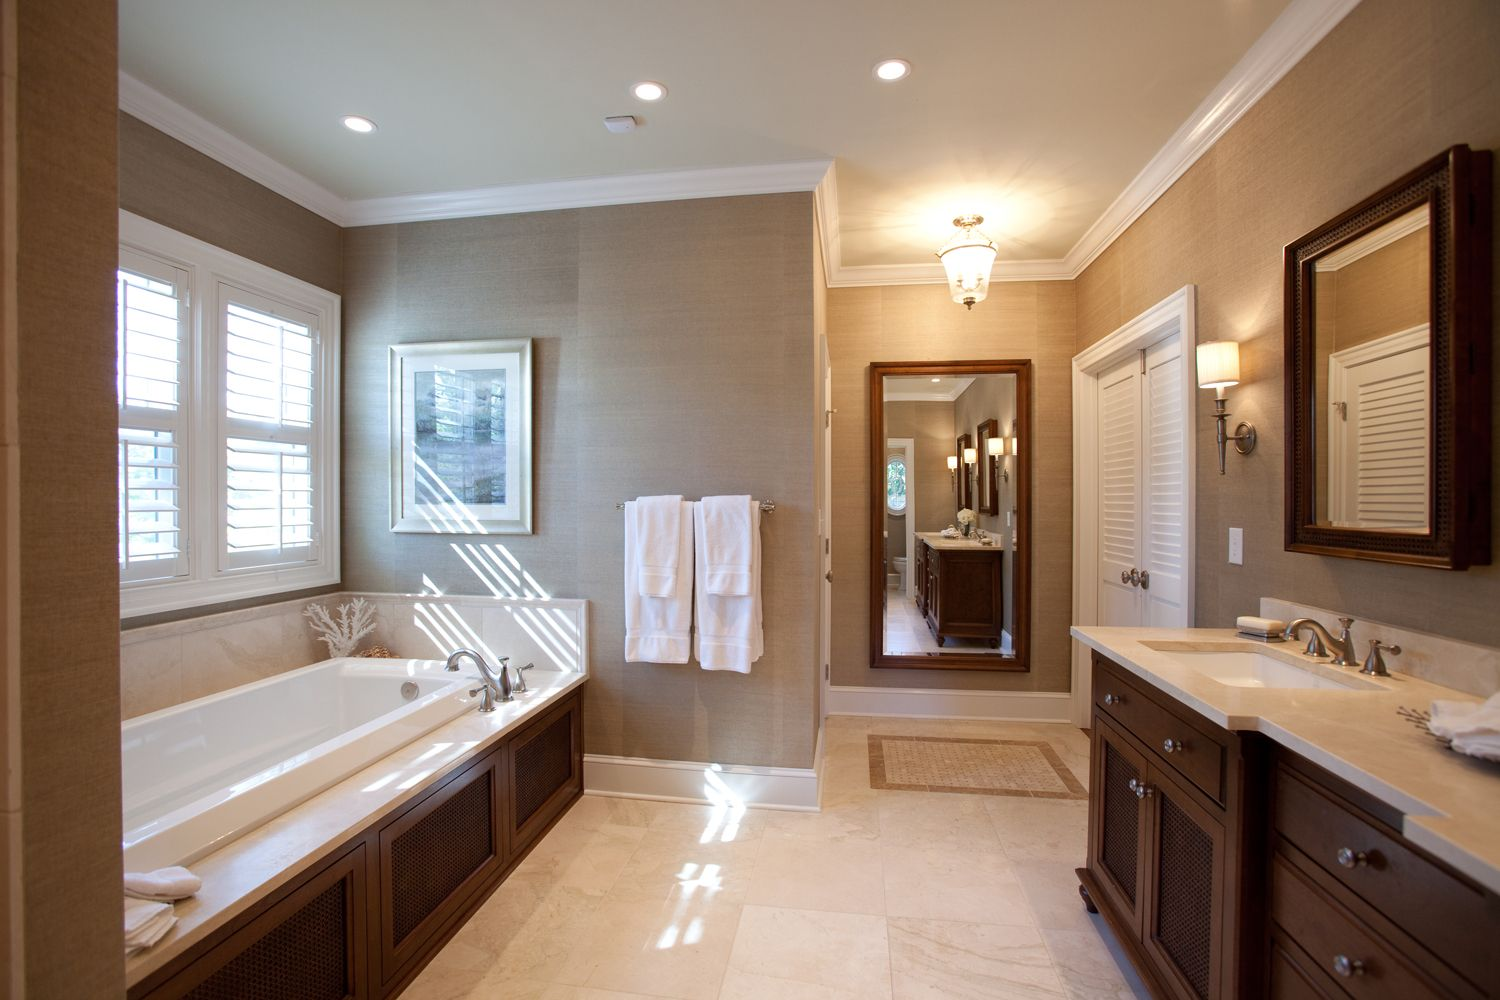 Merveilleux British Colonial Style Bathroom. Master Bathroom. Grasscloth. By Loftus  Design I Like The Dark Wood Around The Tub, Flooring, And Light Counter  Tops With ...